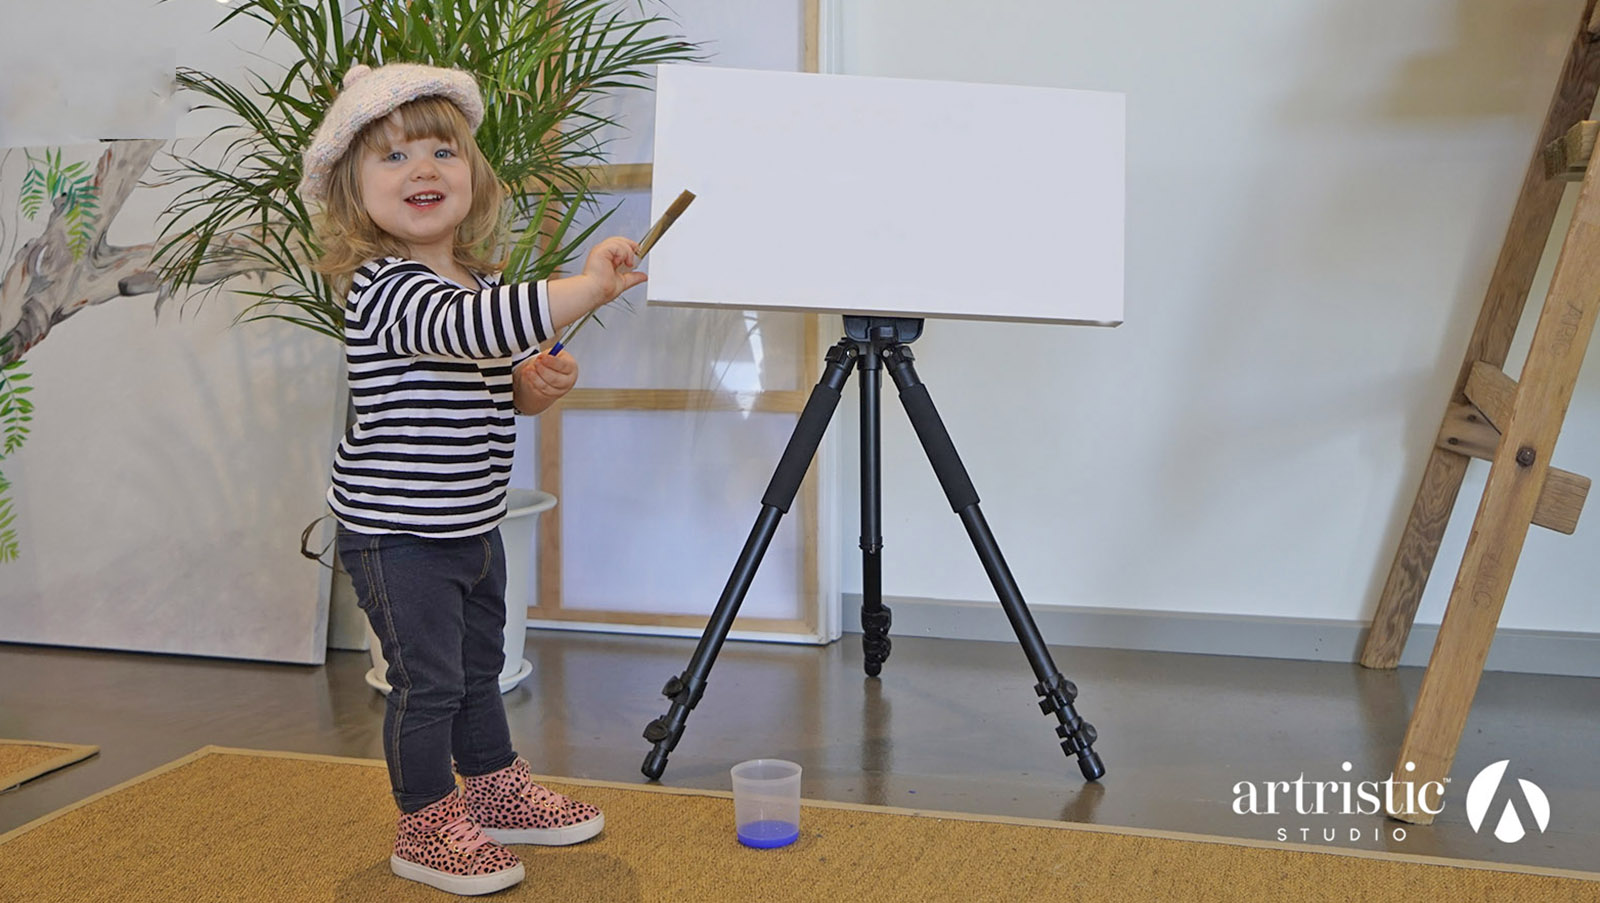 It's a new year and 2018 is an excitingly blank canvas. We enlisted our favorite spokesmodel Charli to welcome you to a totally new Artristic as we begin the year with a new website, new easel and so much more